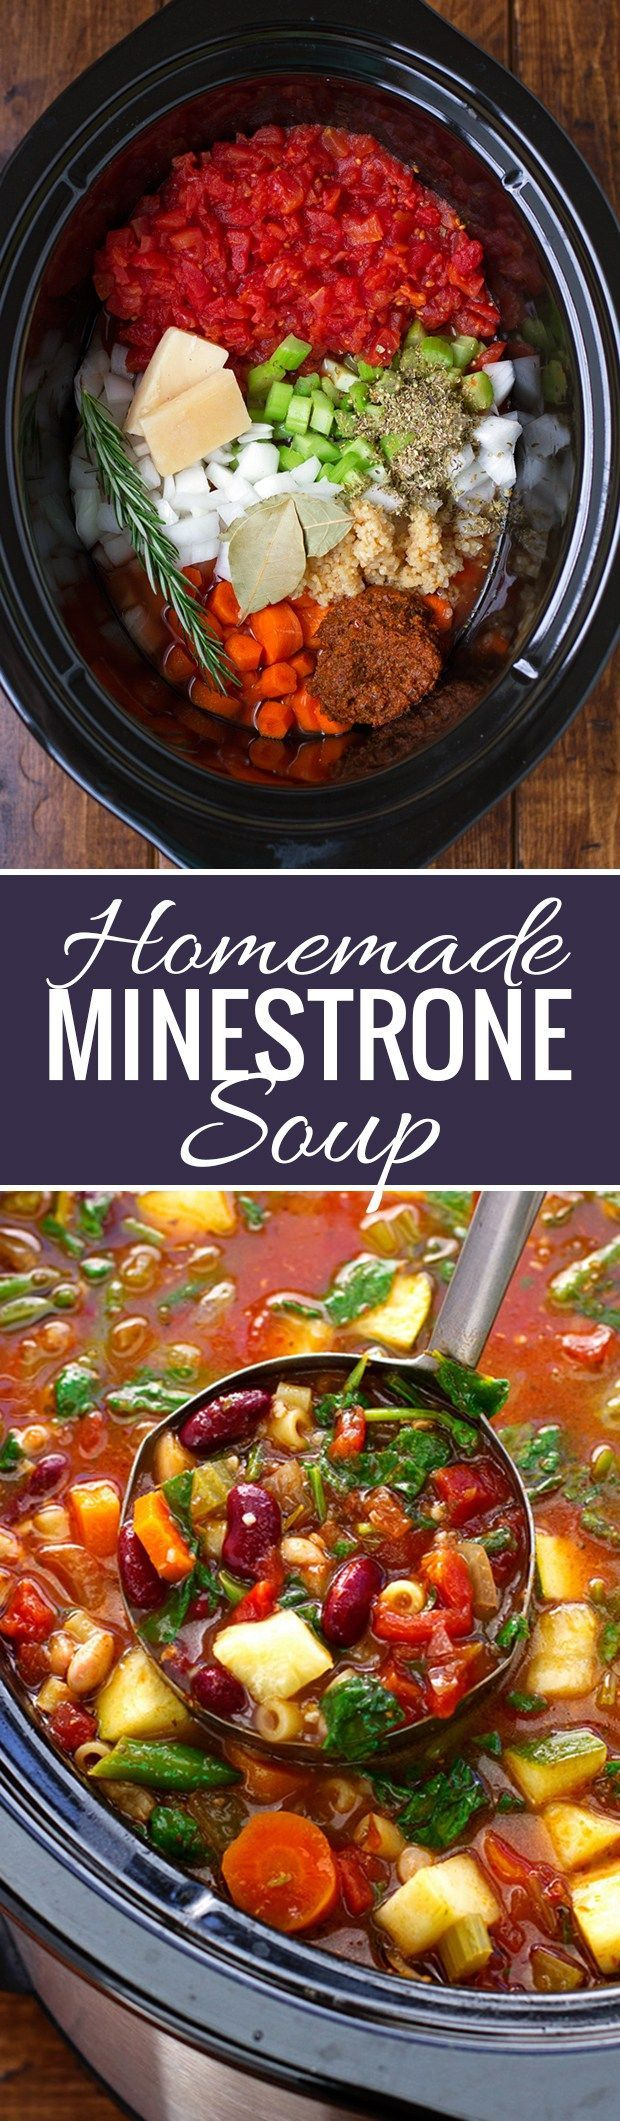 Homemade Minestrone Soup (Slow Cooker)